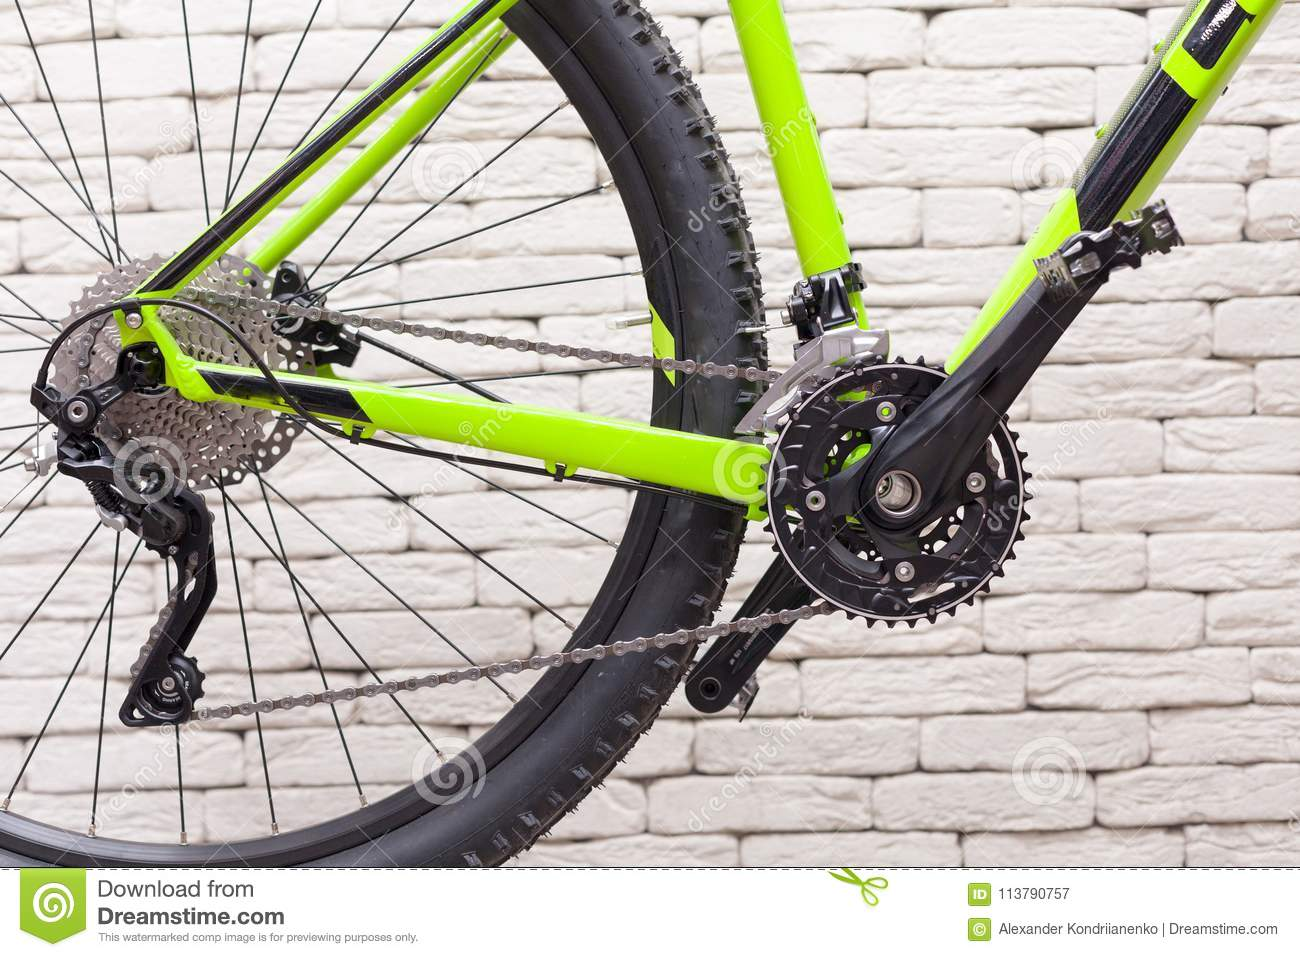 Bicycle chain against a white brick wall. Bicycle sprockets